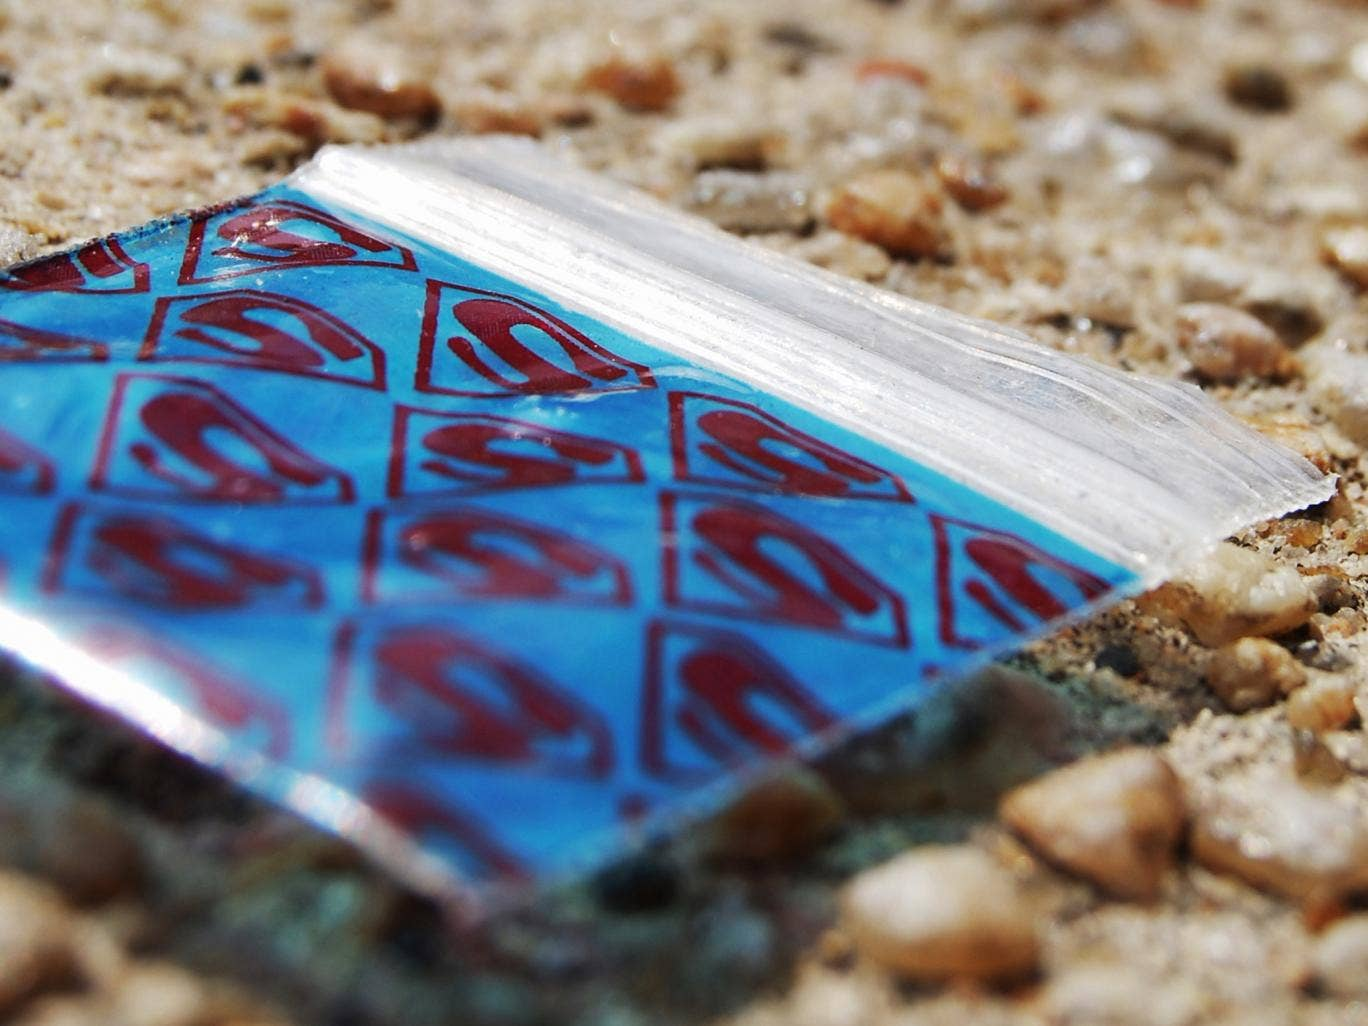 A photographer has been documenting discarded drug bags across south east London since January